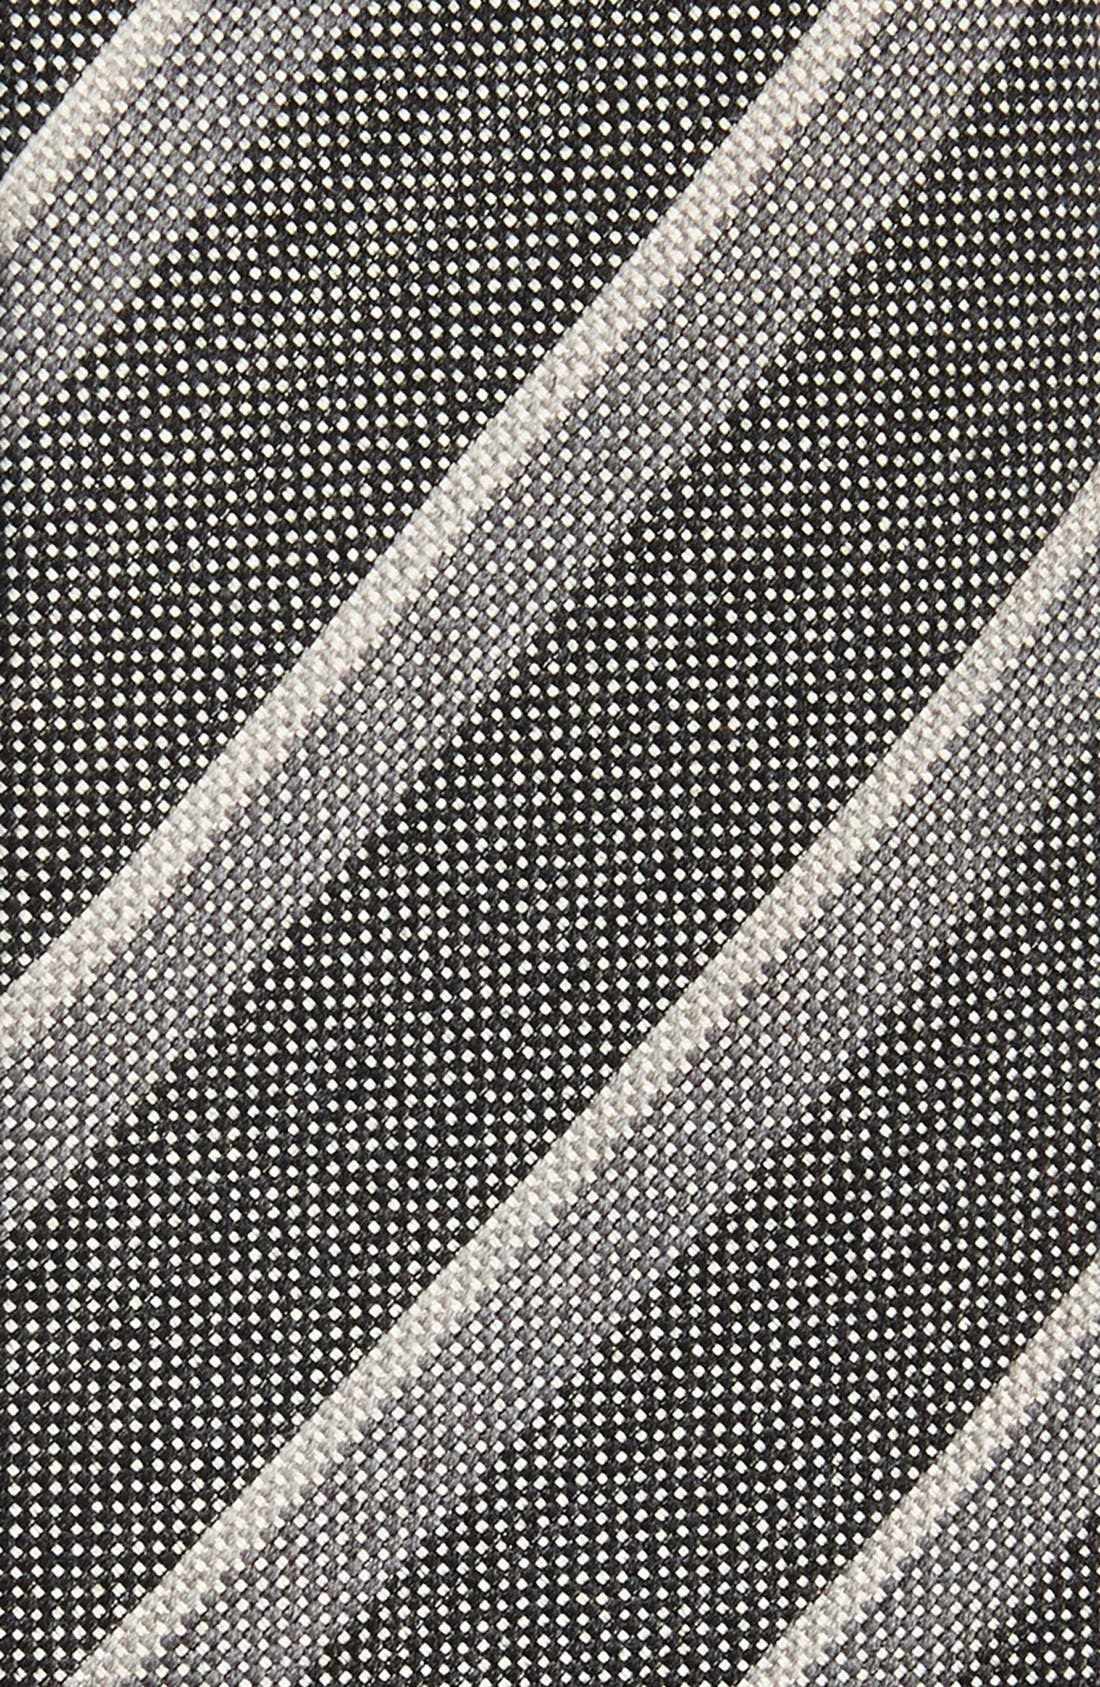 Alternate Image 2  - John Varvatos Collection Woven Cotton Blend Tie